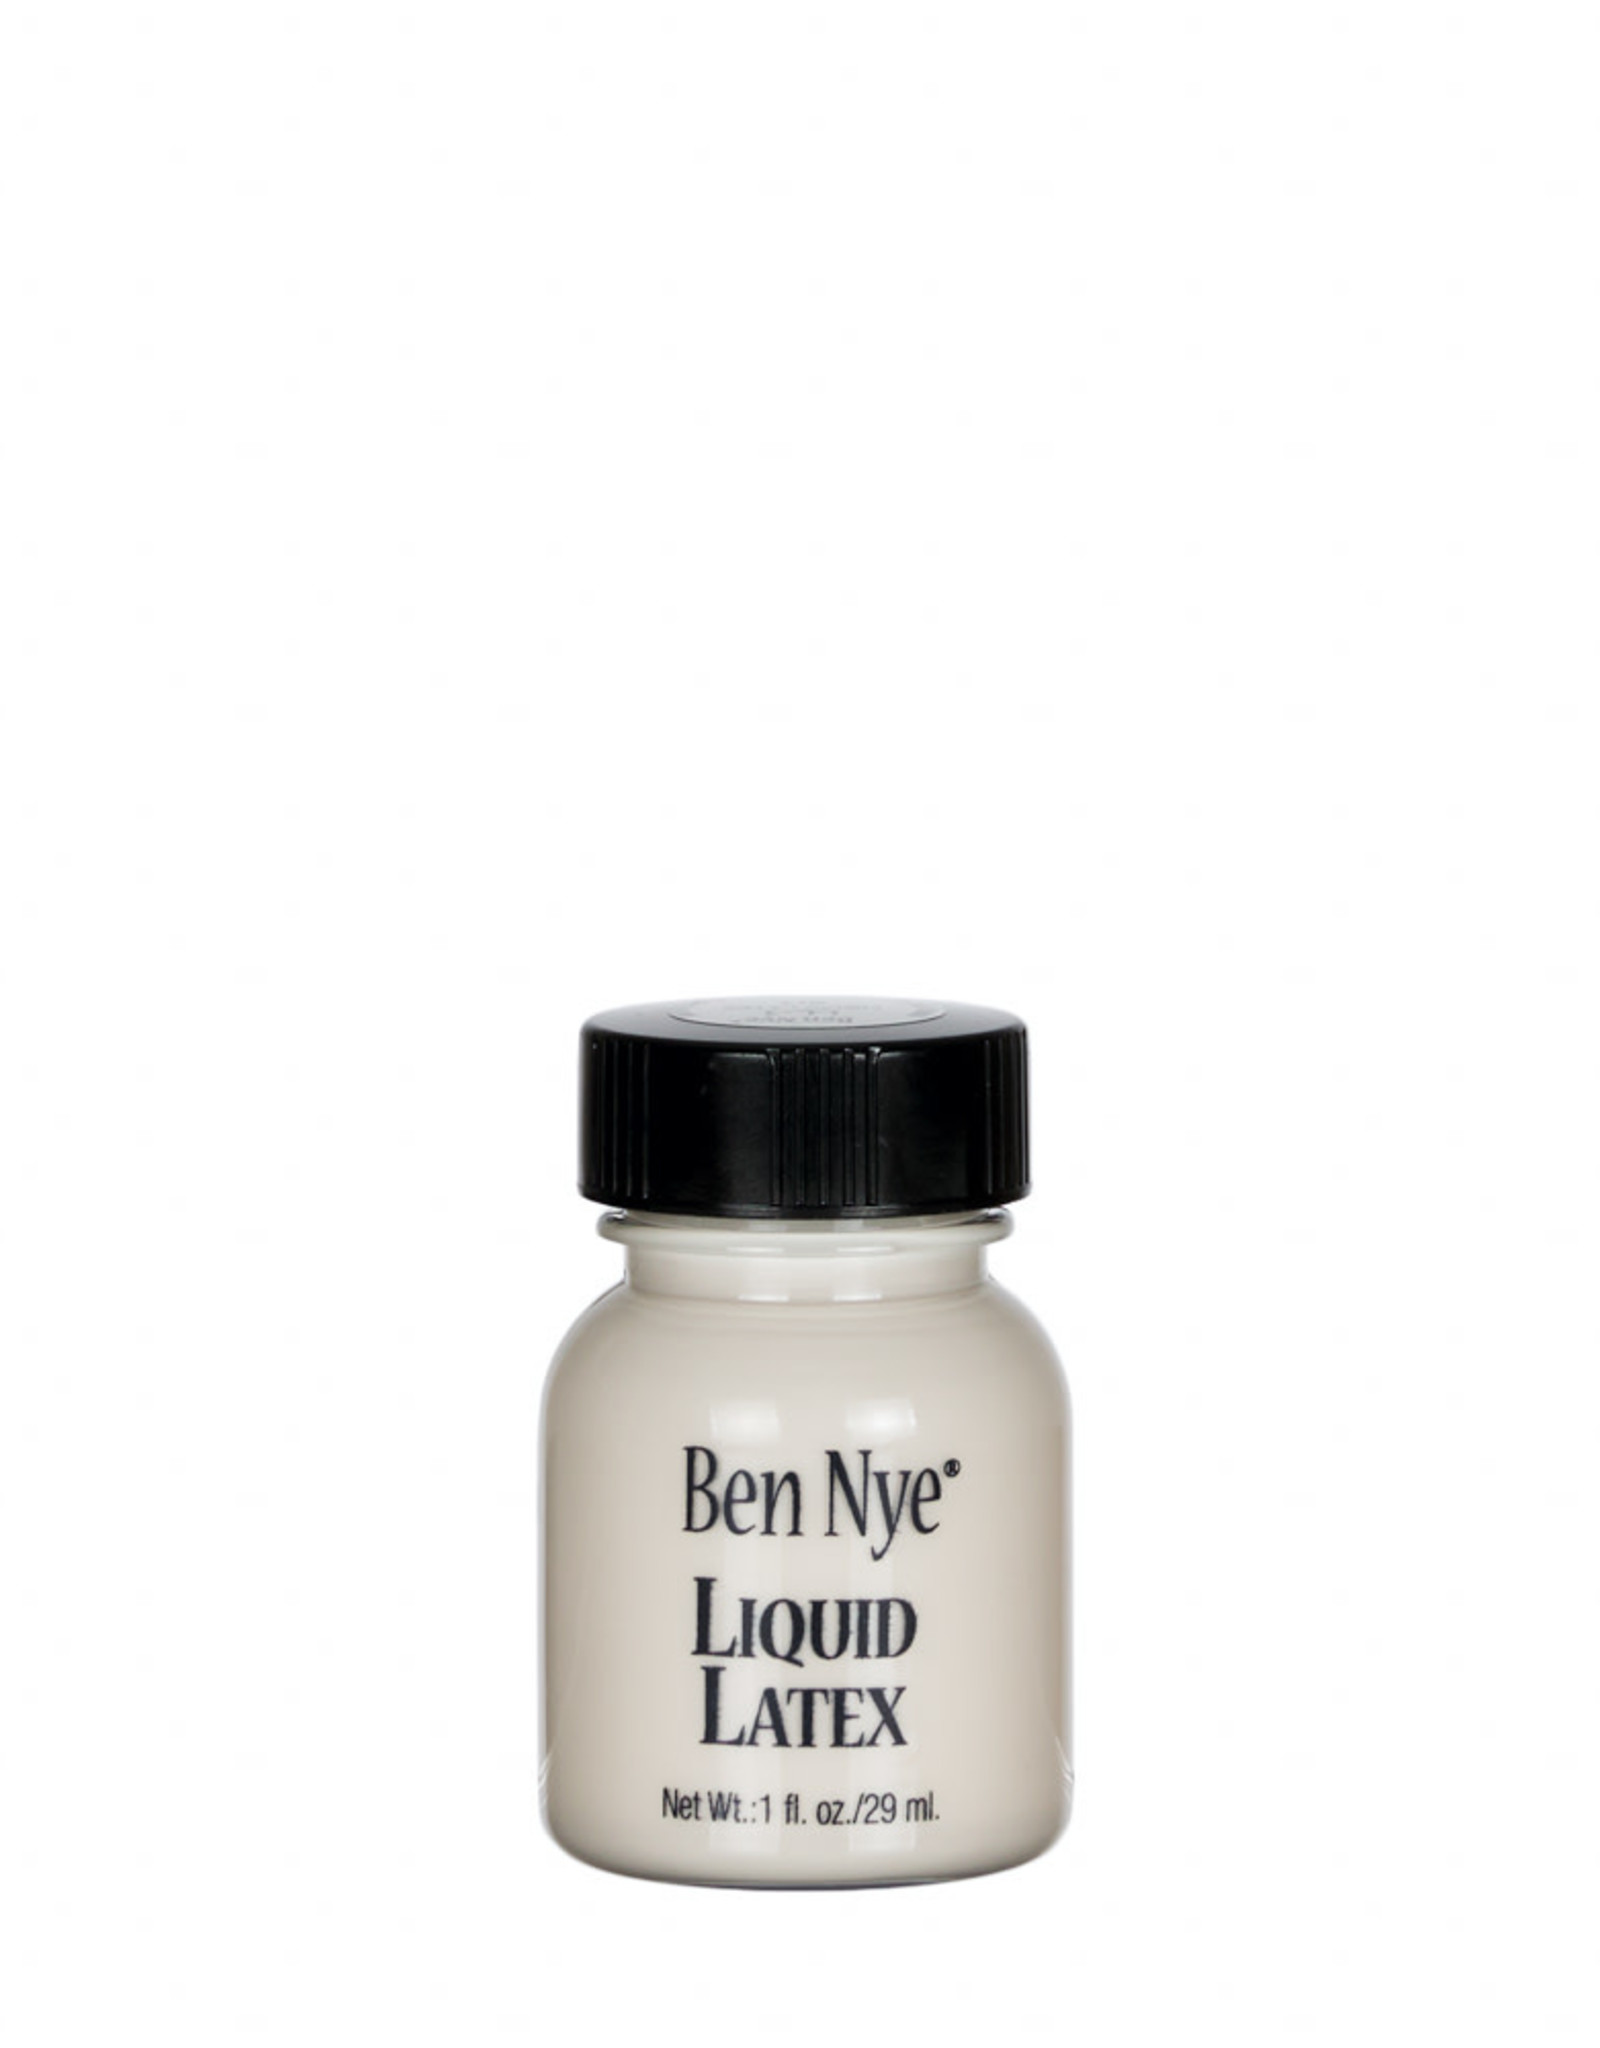 Ben Nye FX LIQUID LATEX, 1 FL OZ